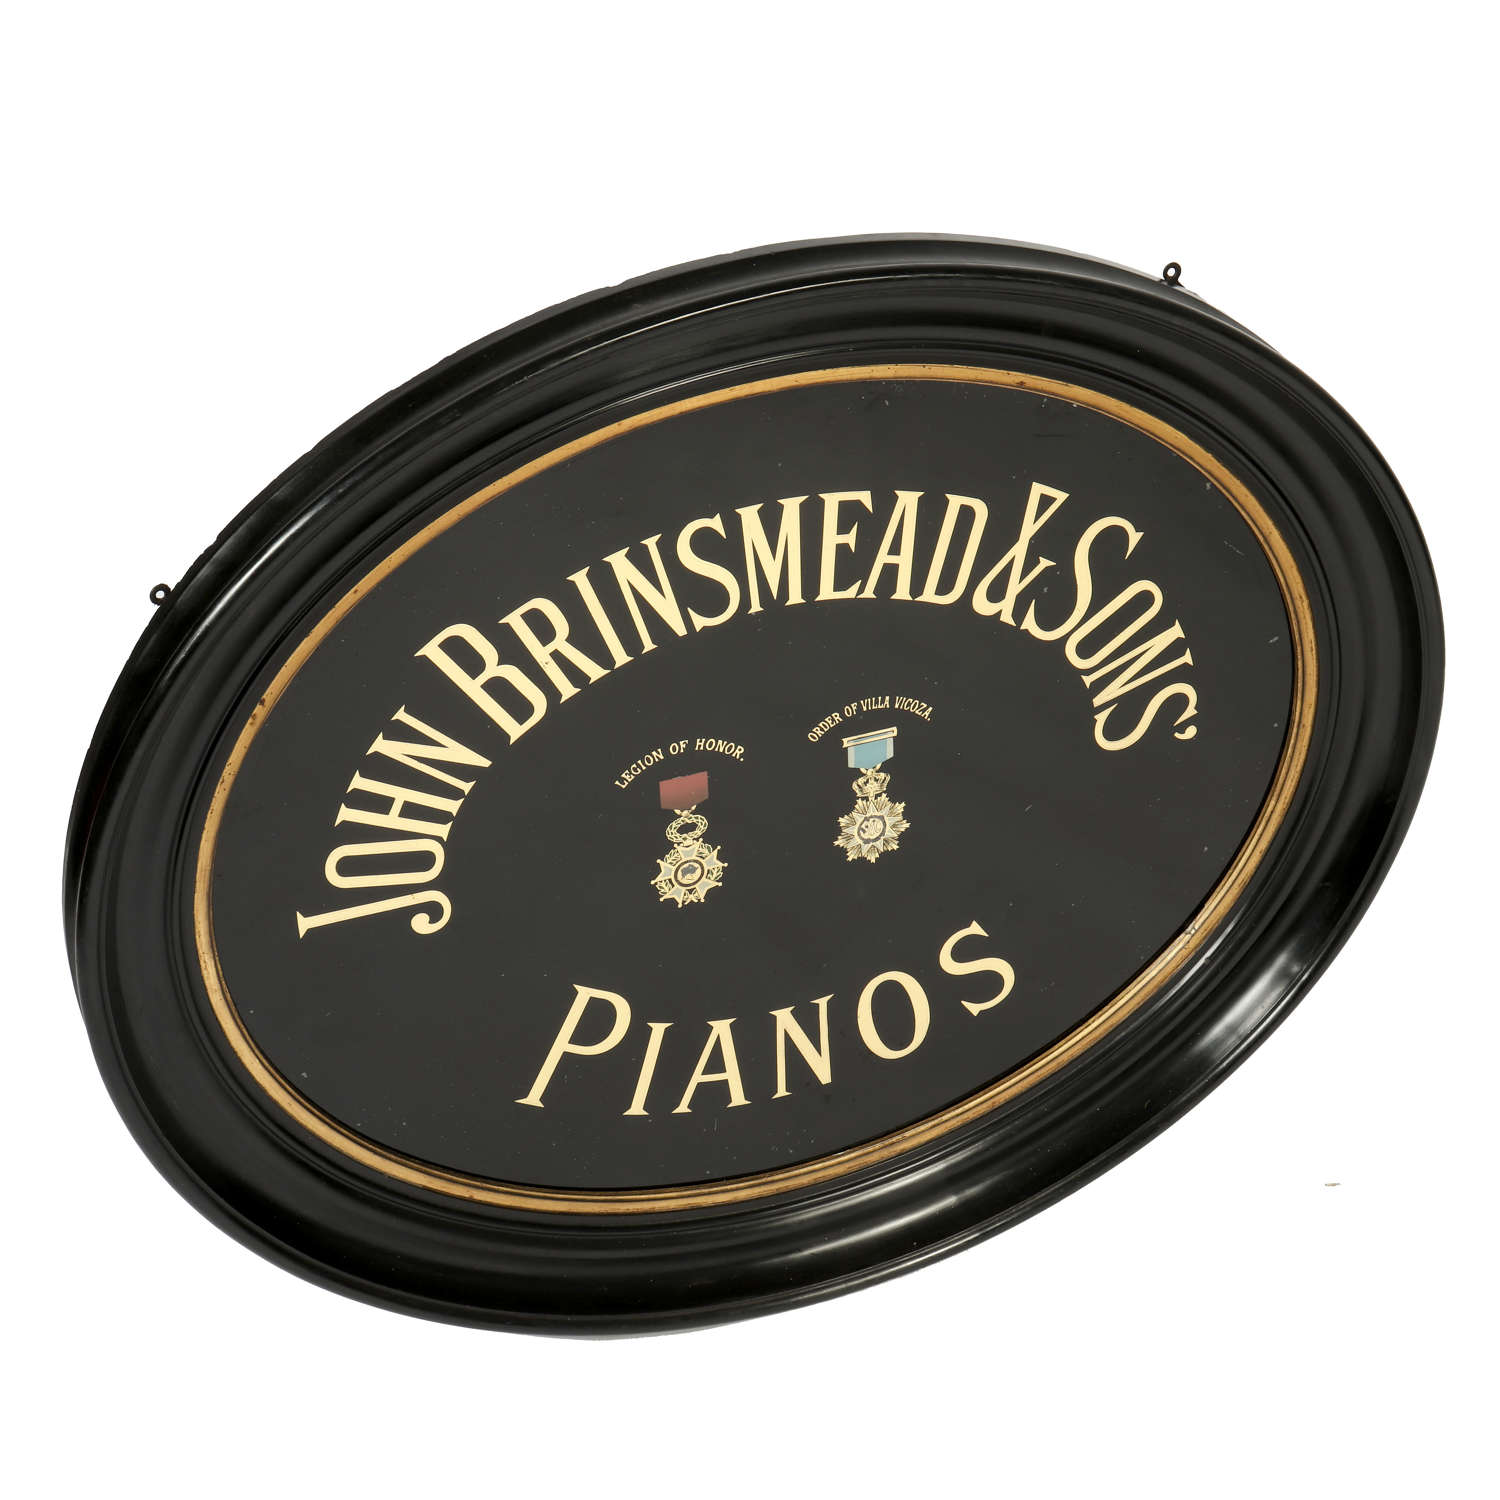 Early 20th century glass sign for John Brinsmead & Sons' Pianos